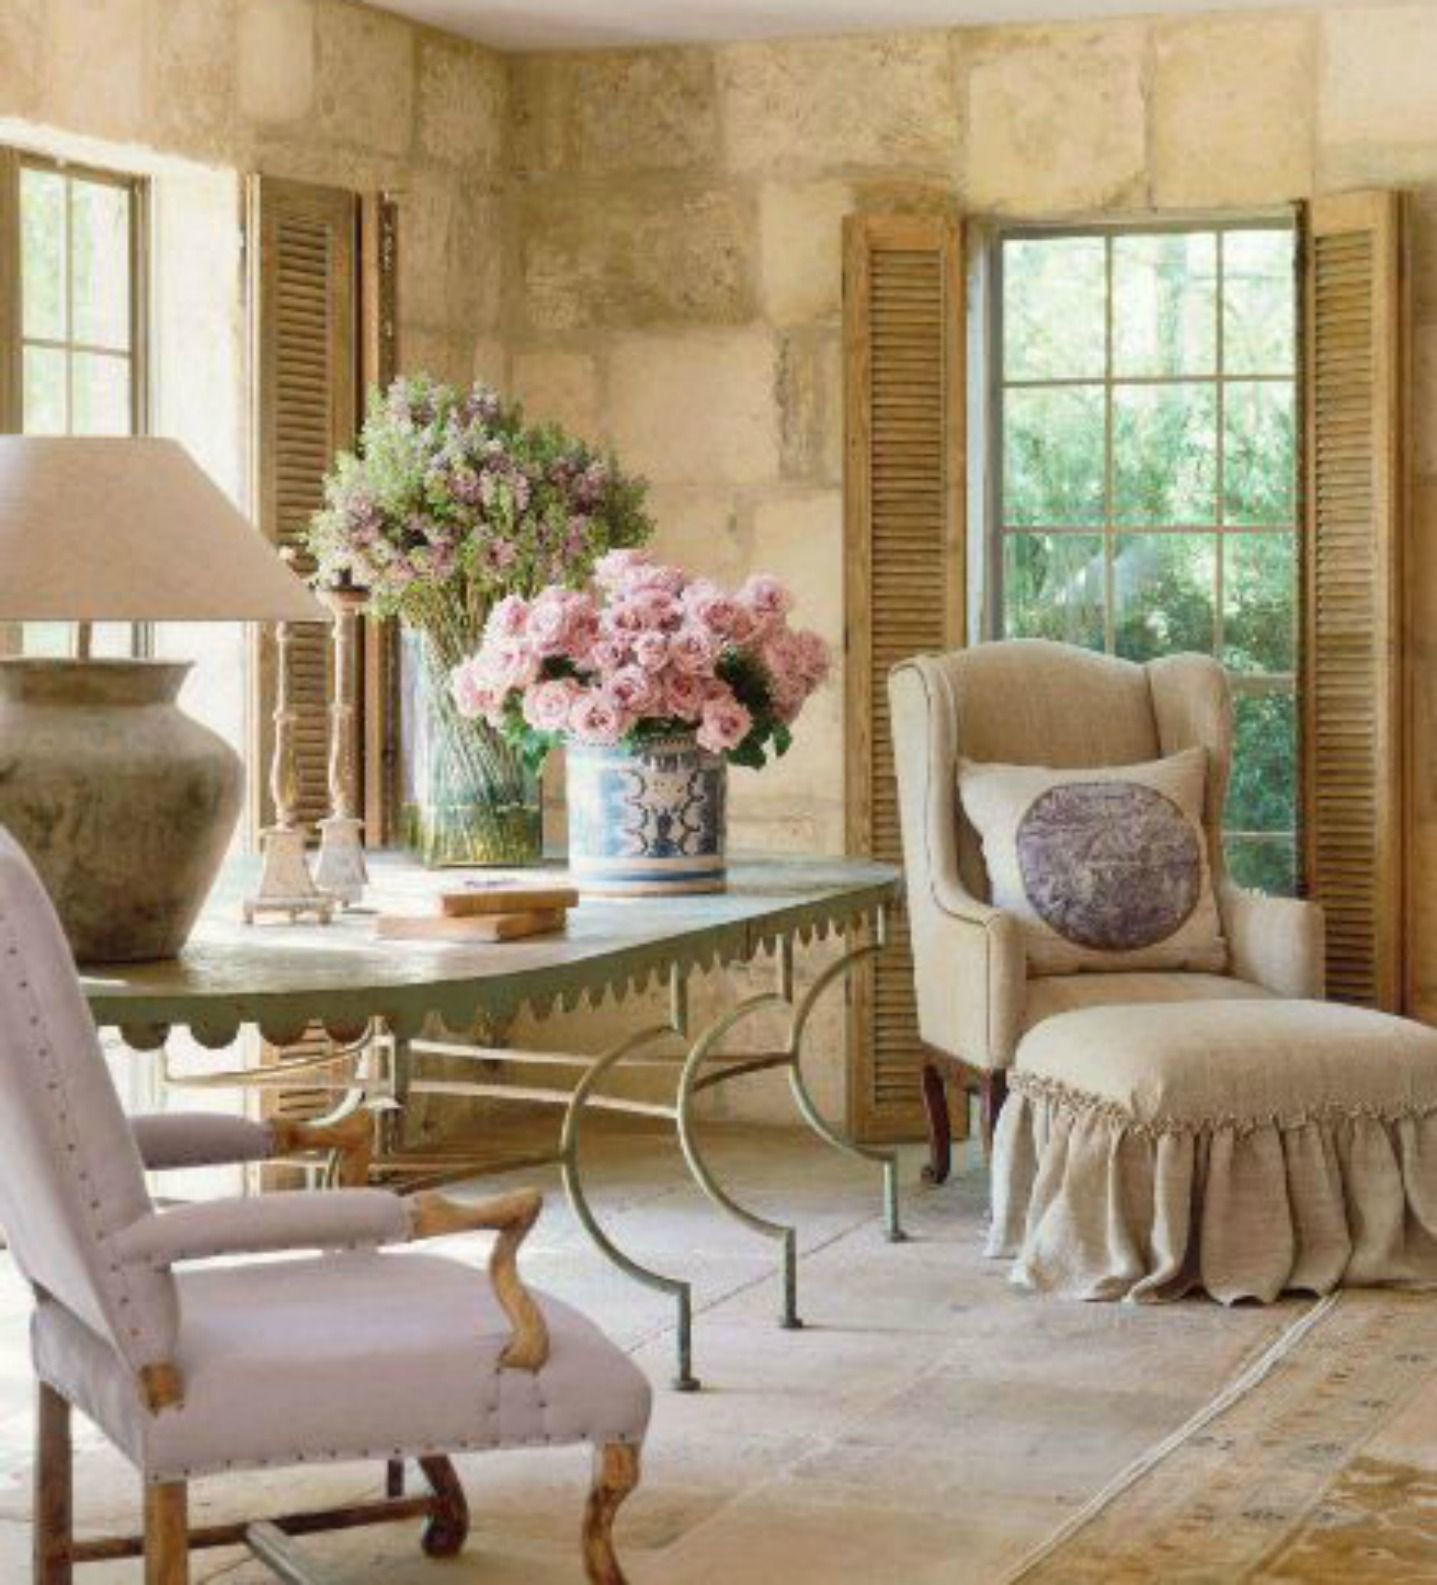 Country Farmhouse Living Room: 31 Beautiful French Farmhouse Style Moments {Decor ...